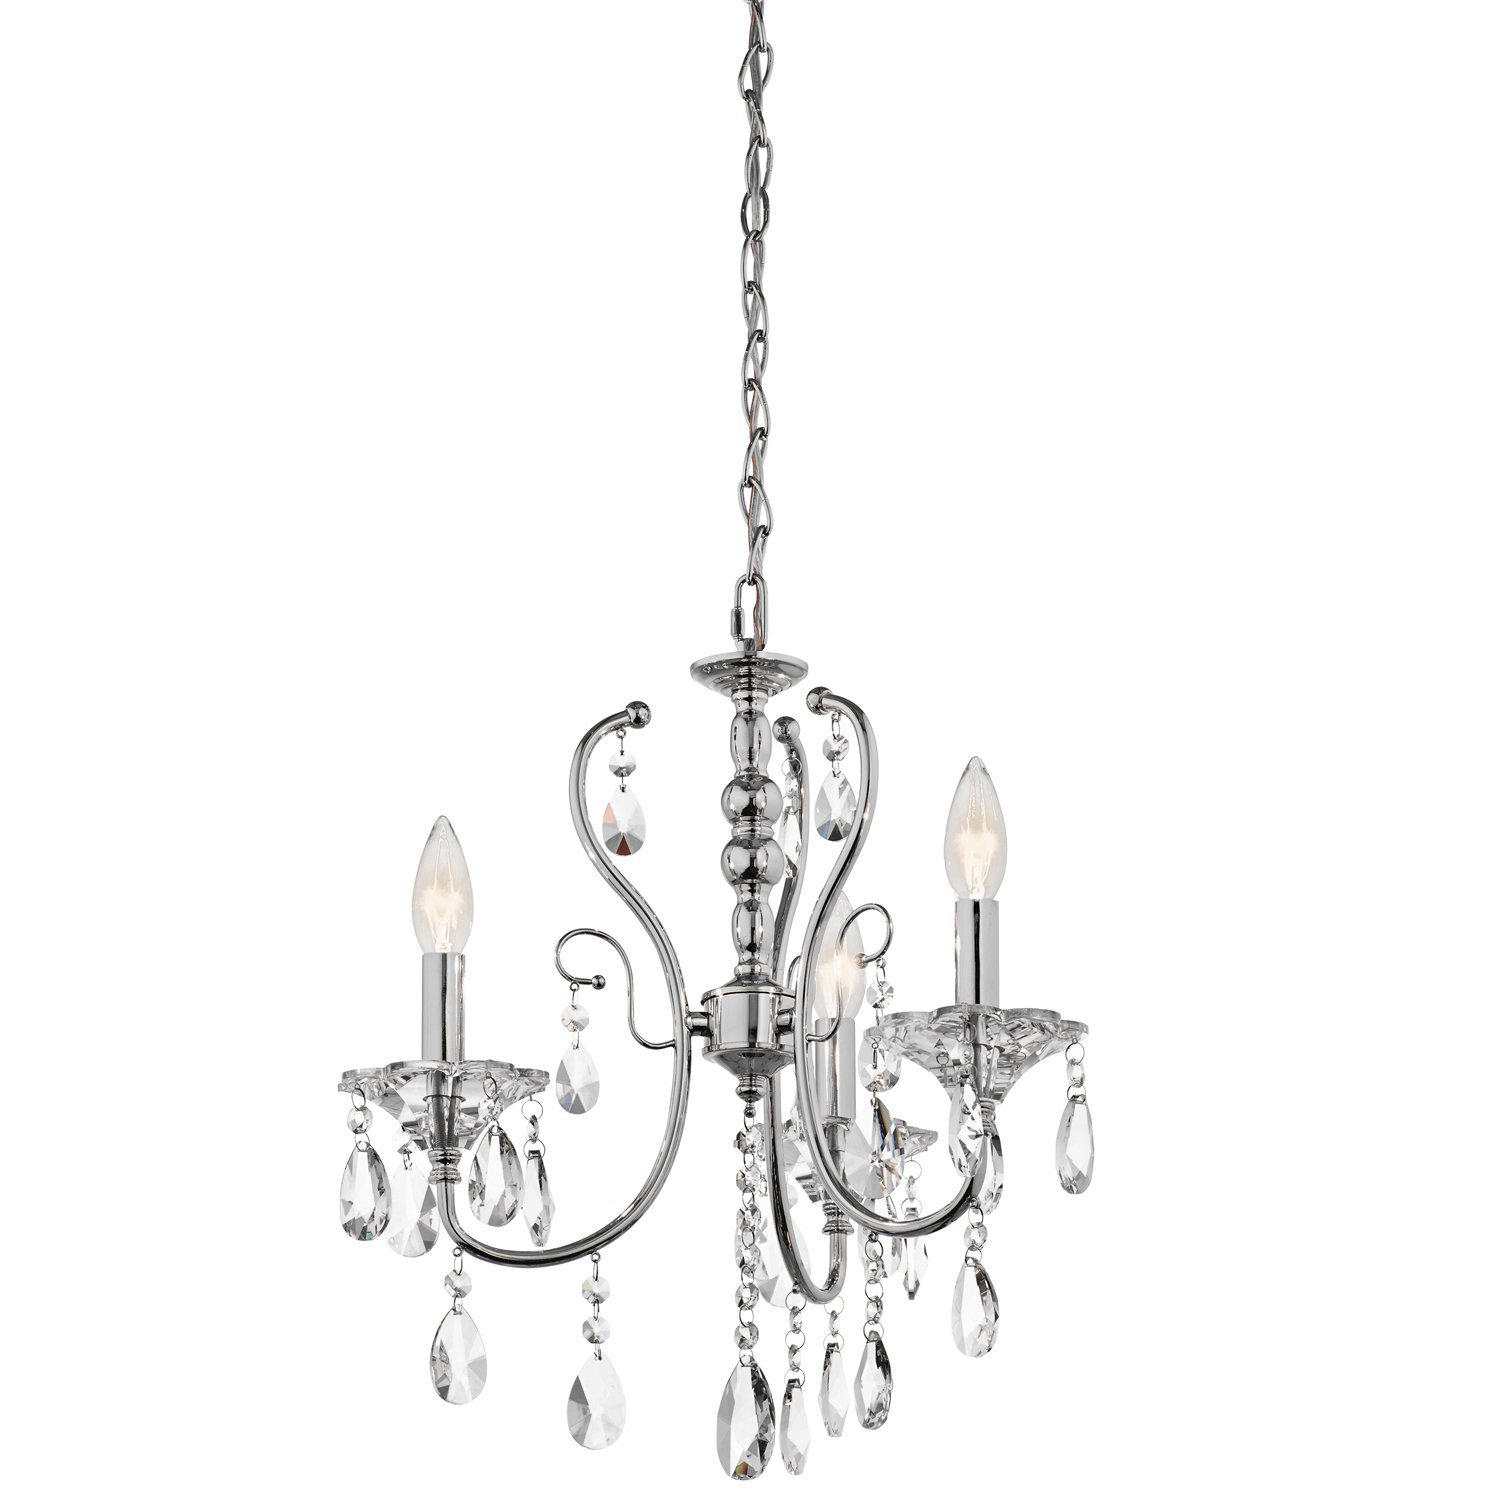 Buy kichler lighting 43120ch jules 3 light mini chandelier chrome kichler lighting 43120ch jules 3 light mini chandelier chrome finish with crystal accents aloadofball Images